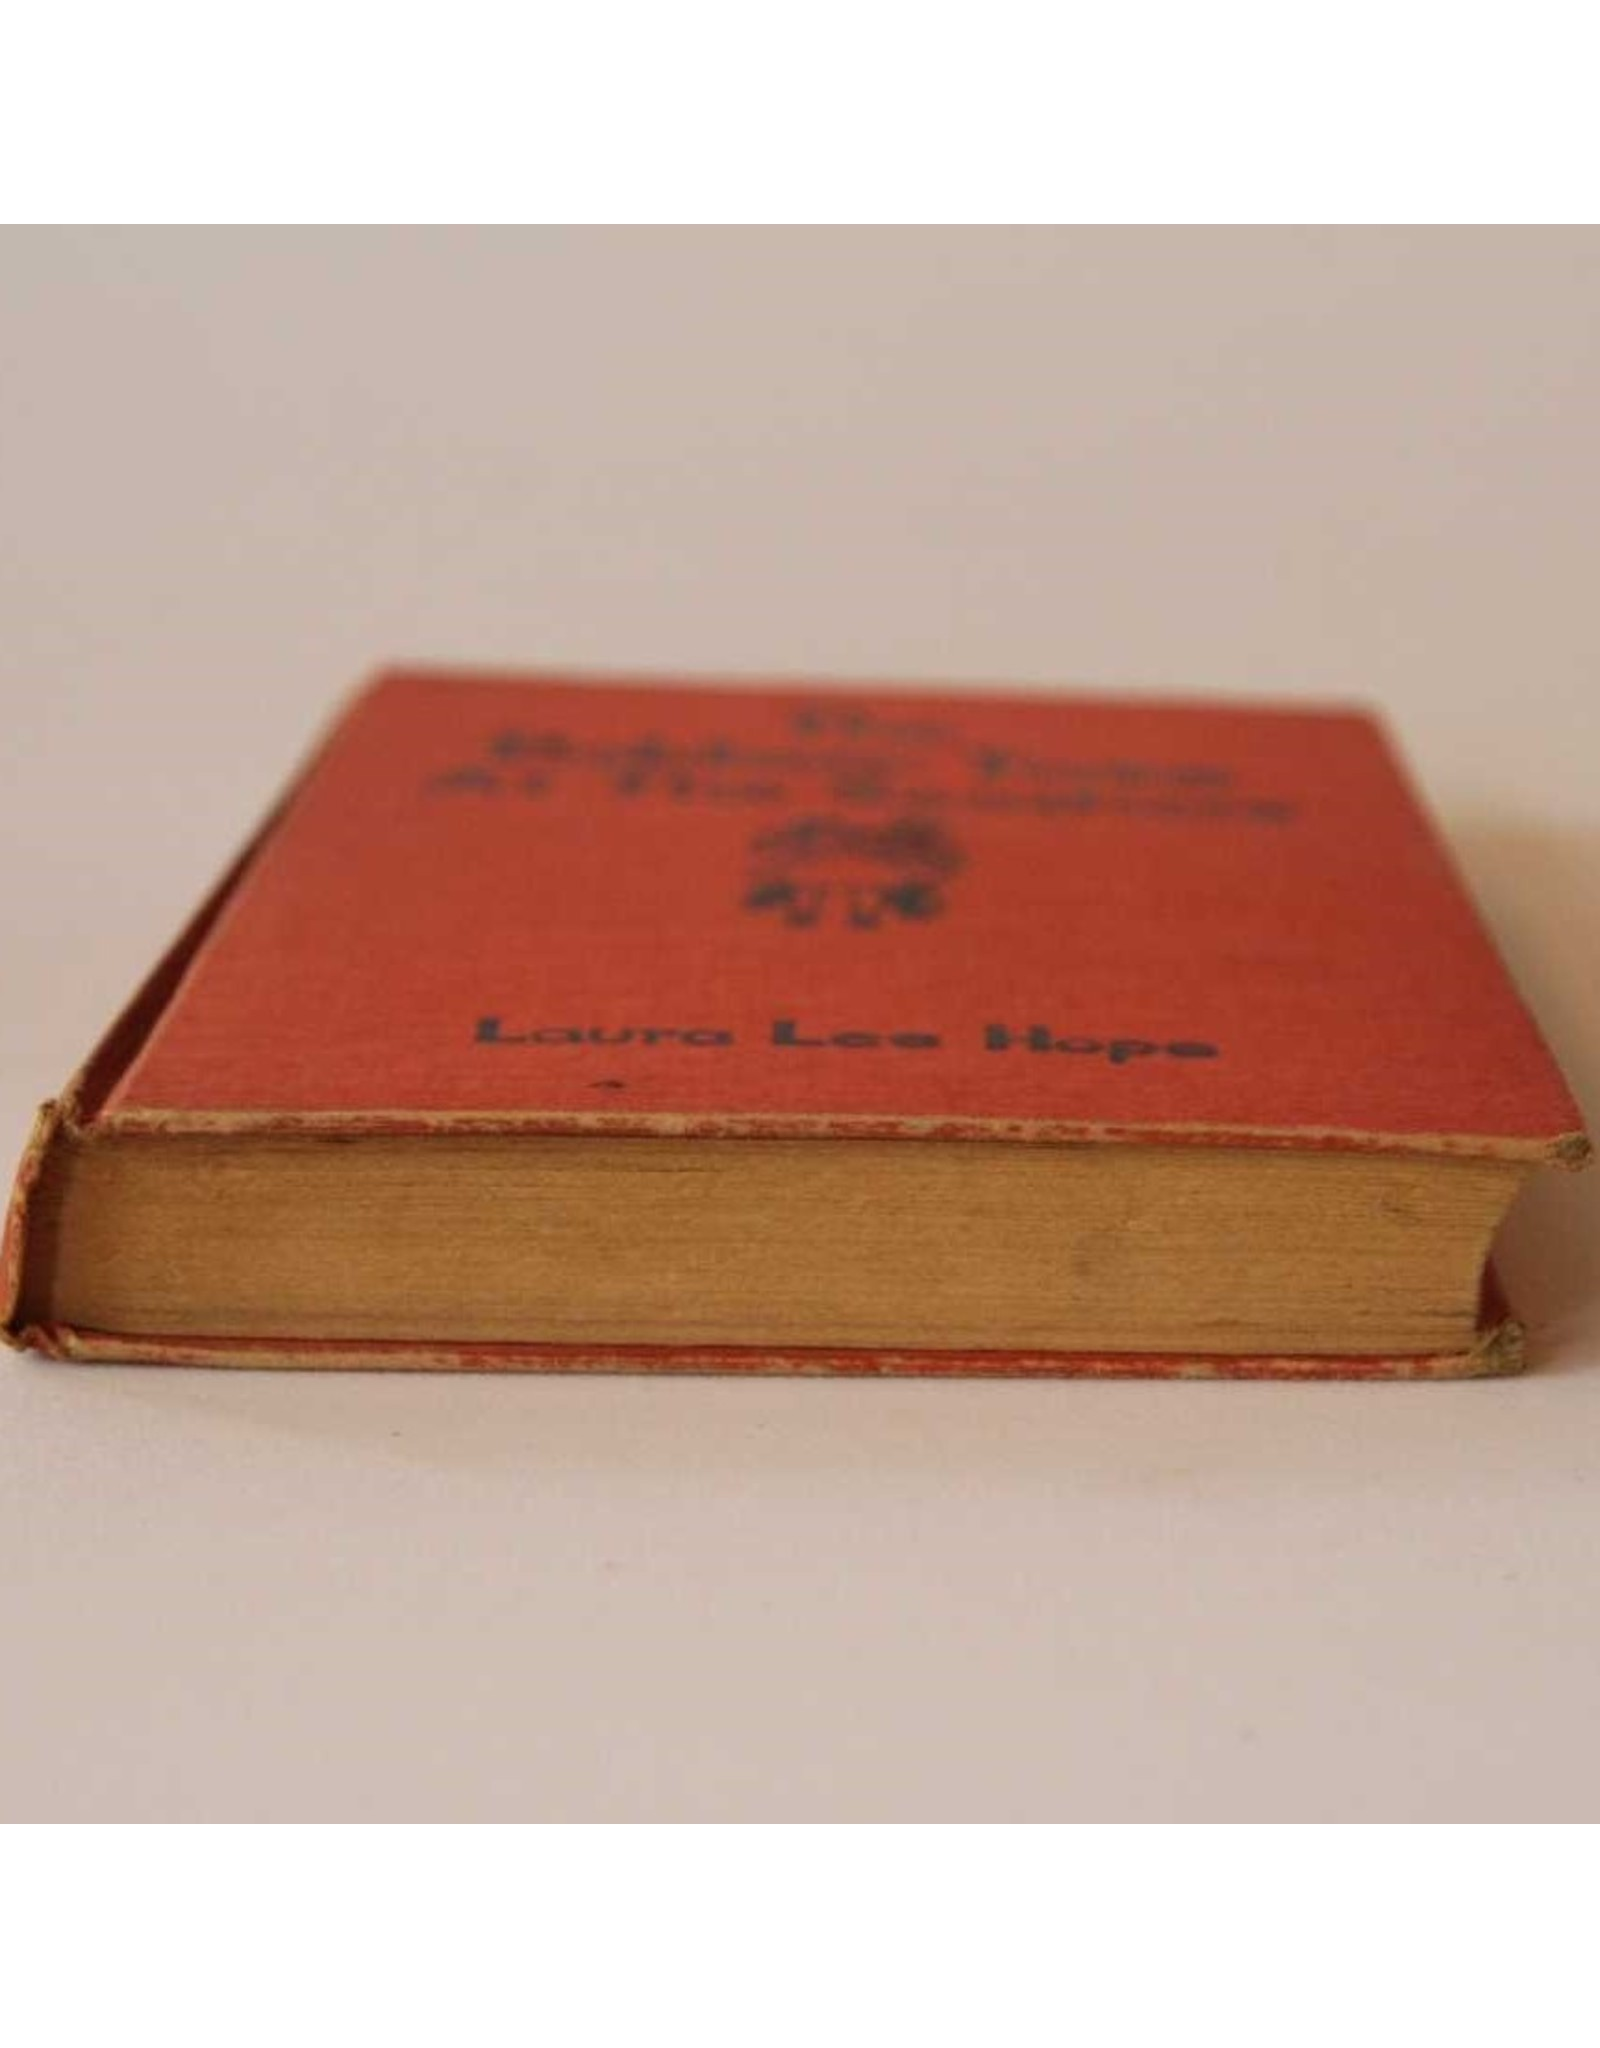 Book: The Bobbsey Twins at the Seashore by Laura Lee Hope, hardcover. The Goldsmith Publishing Co.